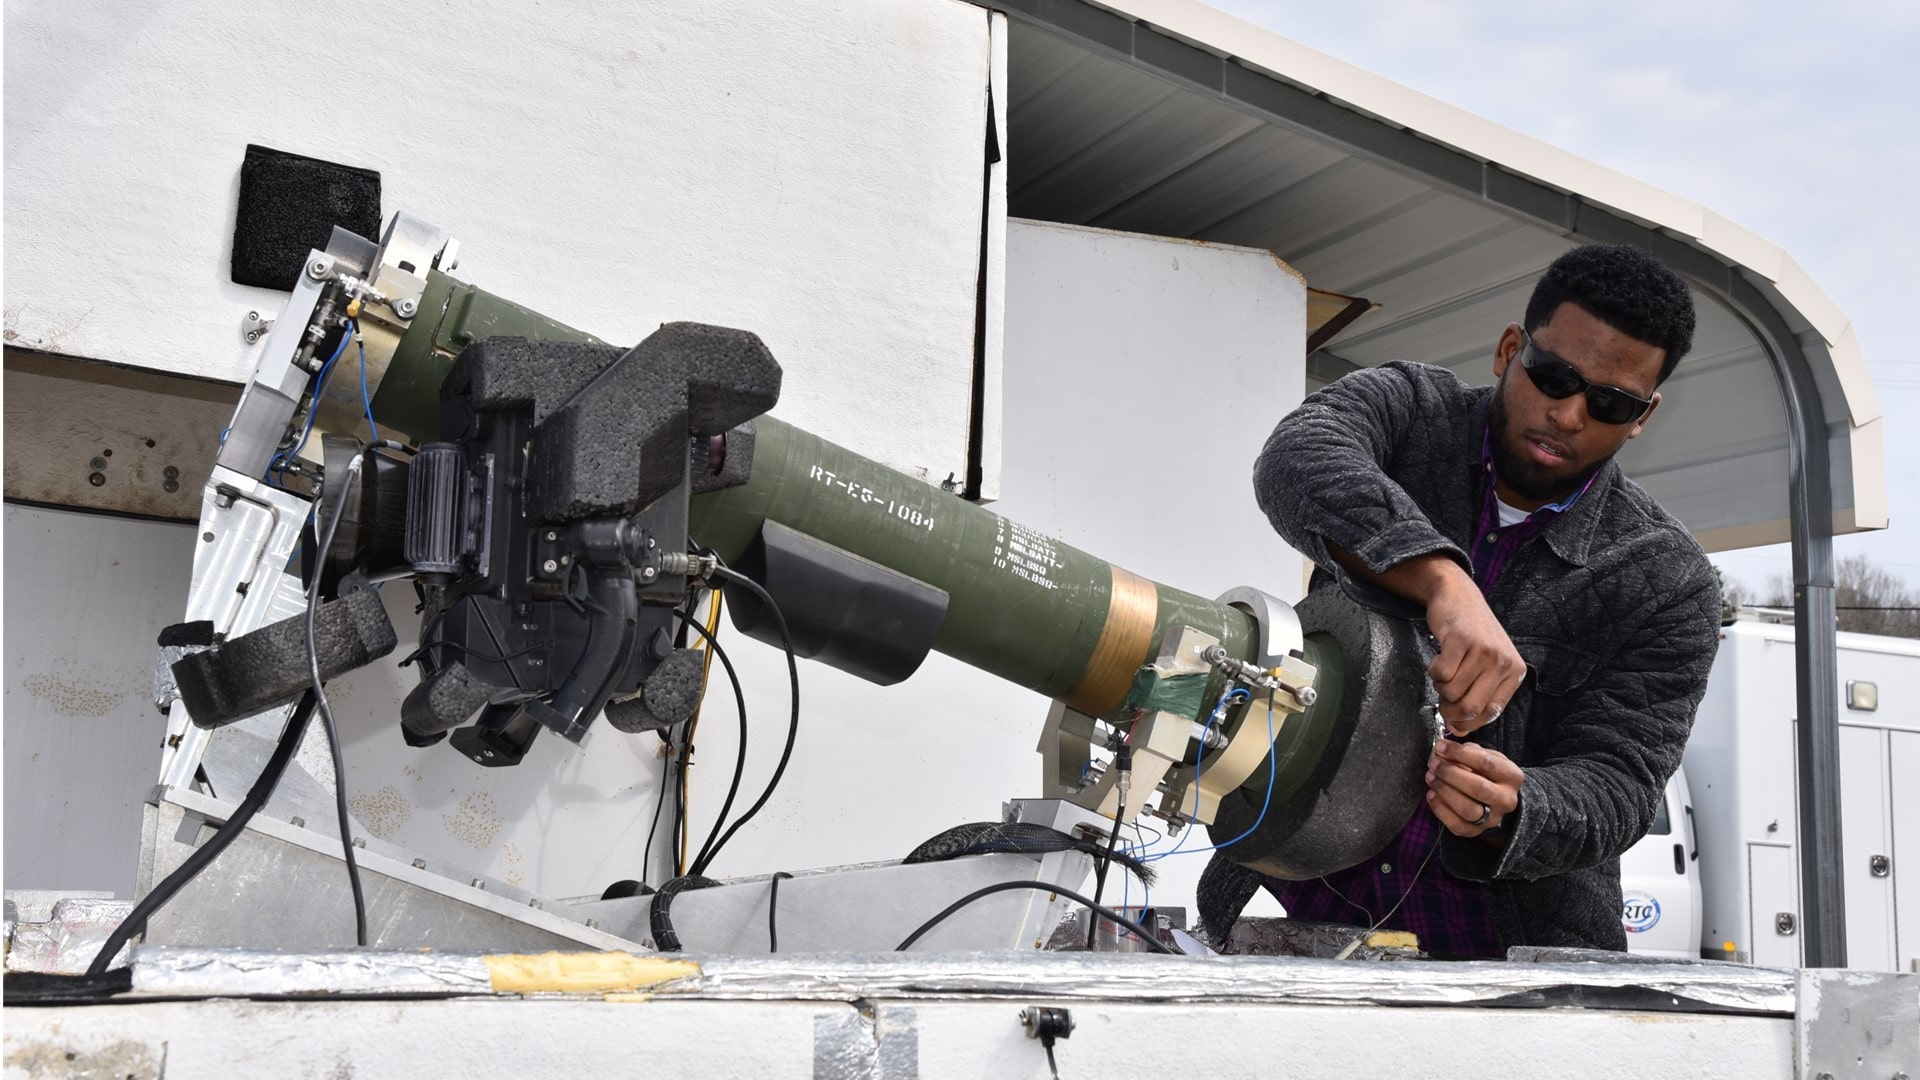 A civilian is fixing a piece of a TOW anti-tank missile launcher.